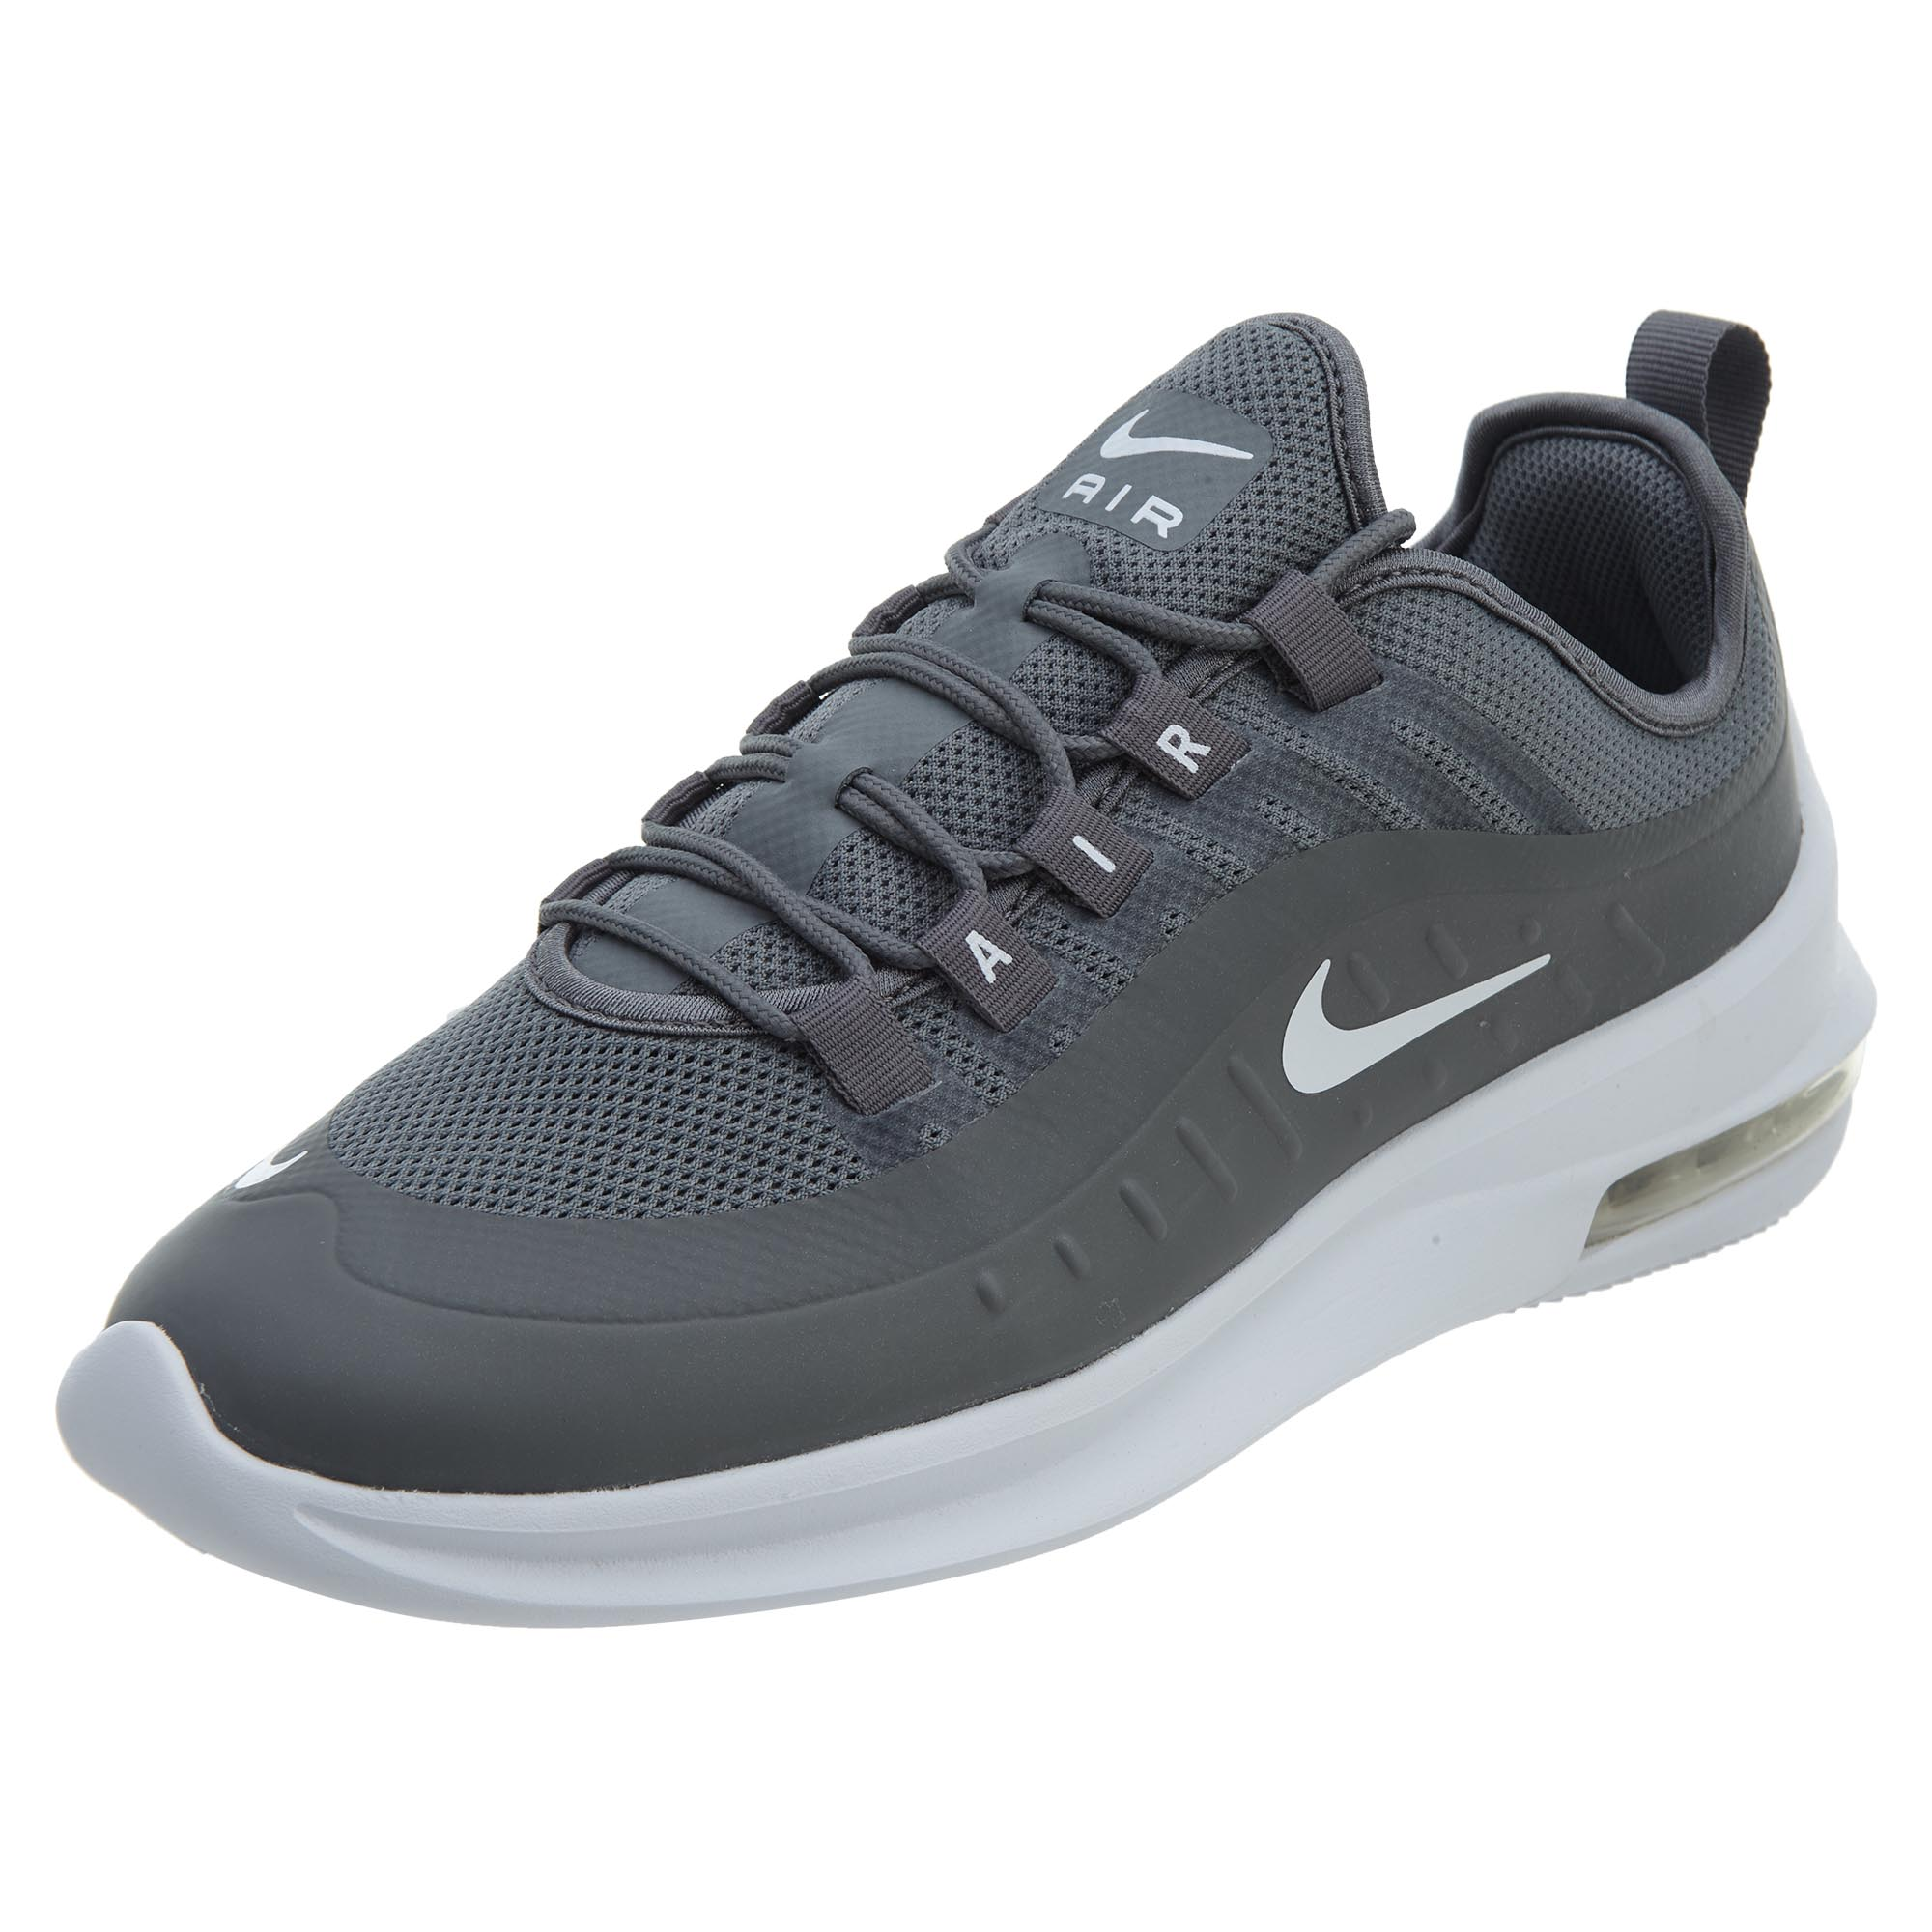 Details about Nike Mens Air Max Axis Running Shoes AA2146-002 54241dee0b62